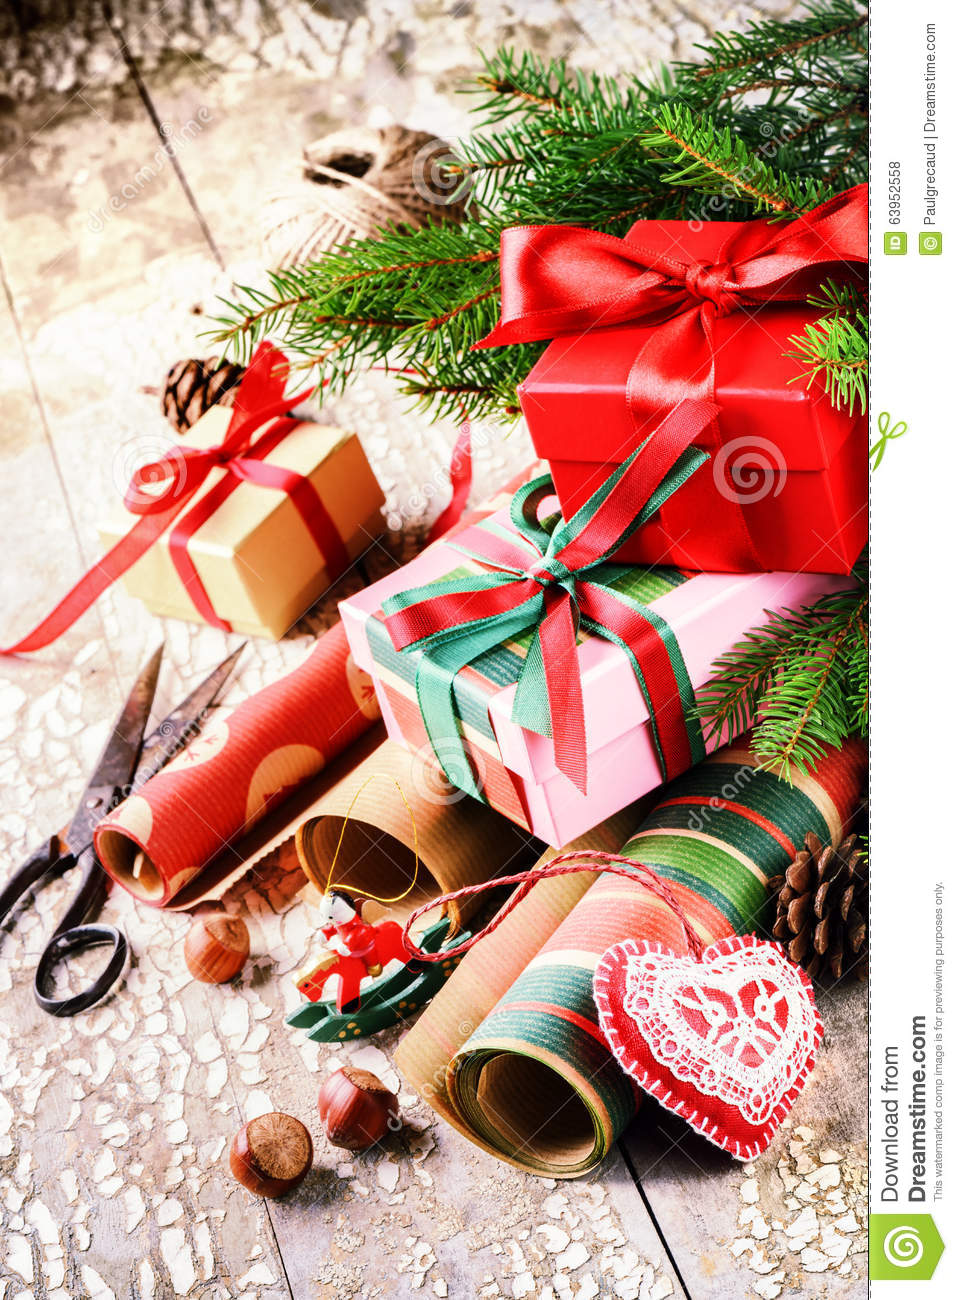 Holiday Setting With Handmade Gift Boxes And Wrapping